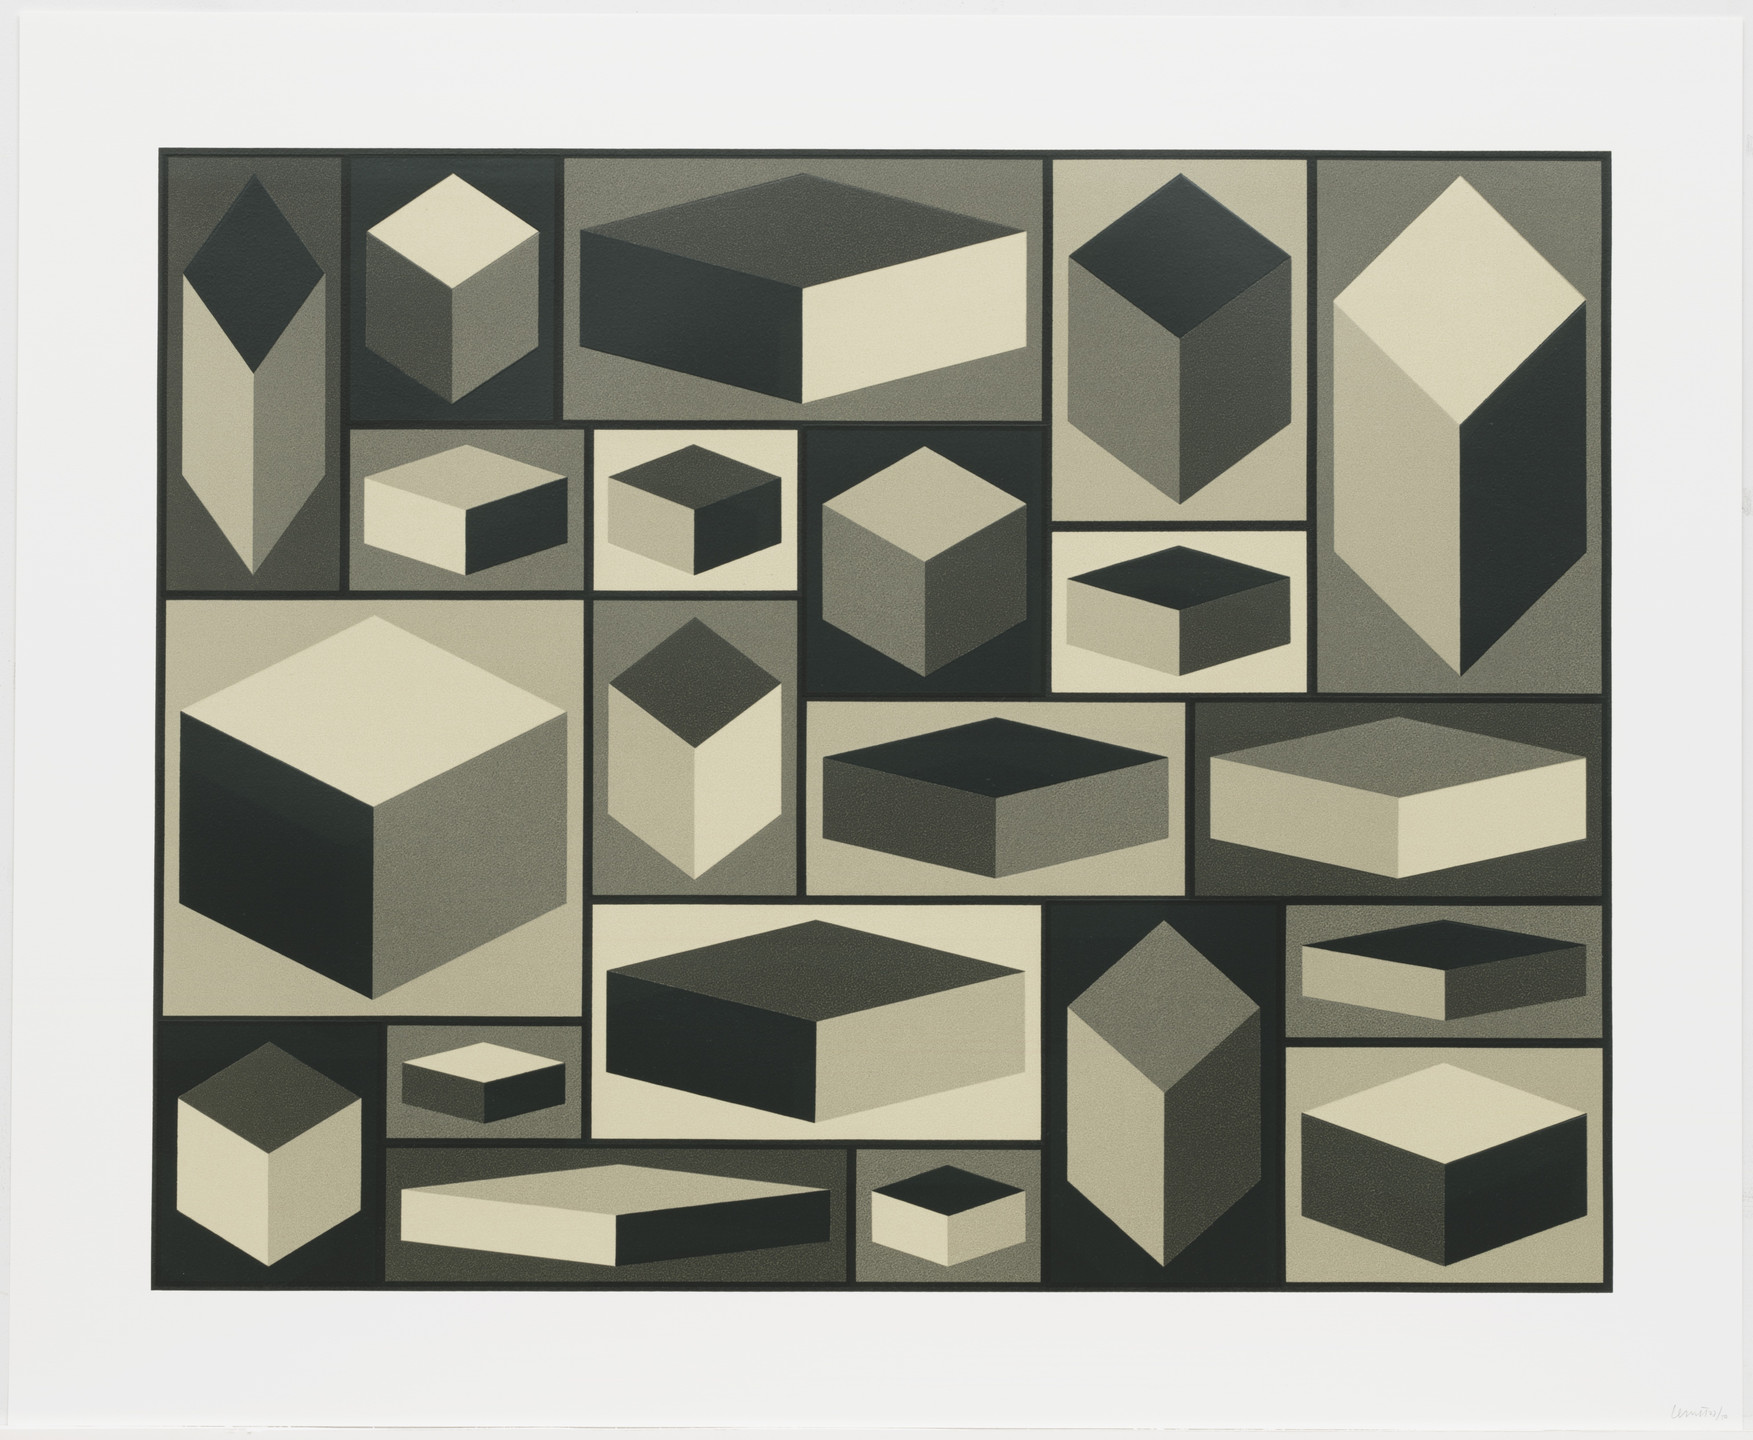 Sol LeWitt. Distorted Cubes (A) from Distorted Cubes (A-E). 2001